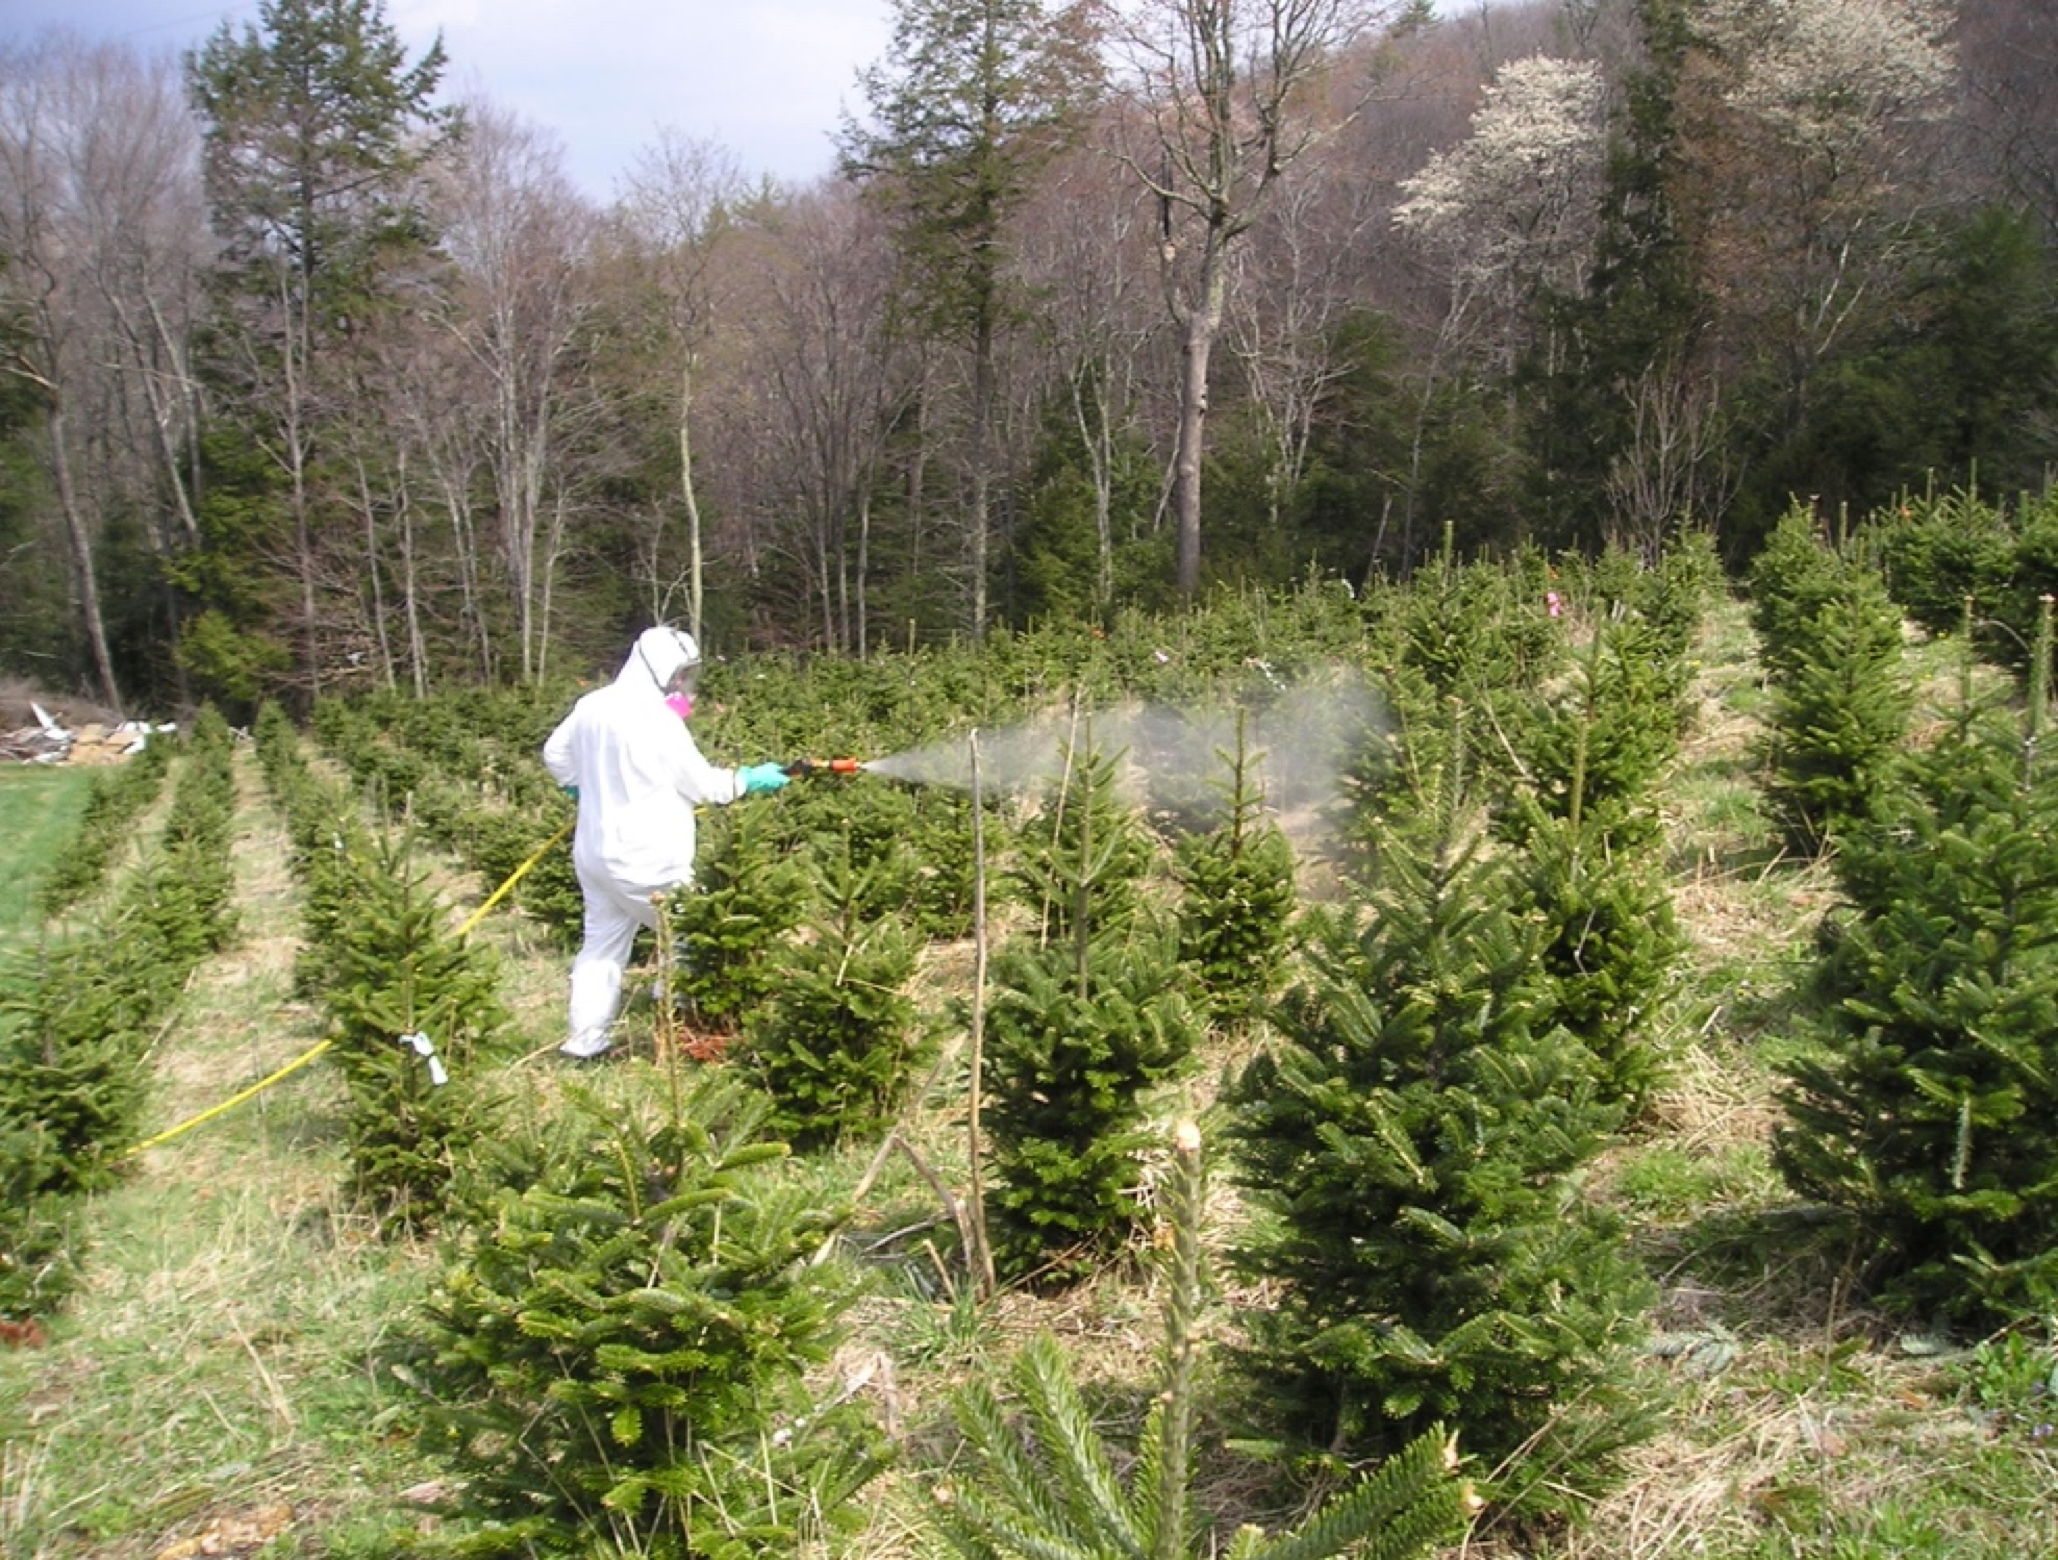 pesticide applicator spraying trees in field